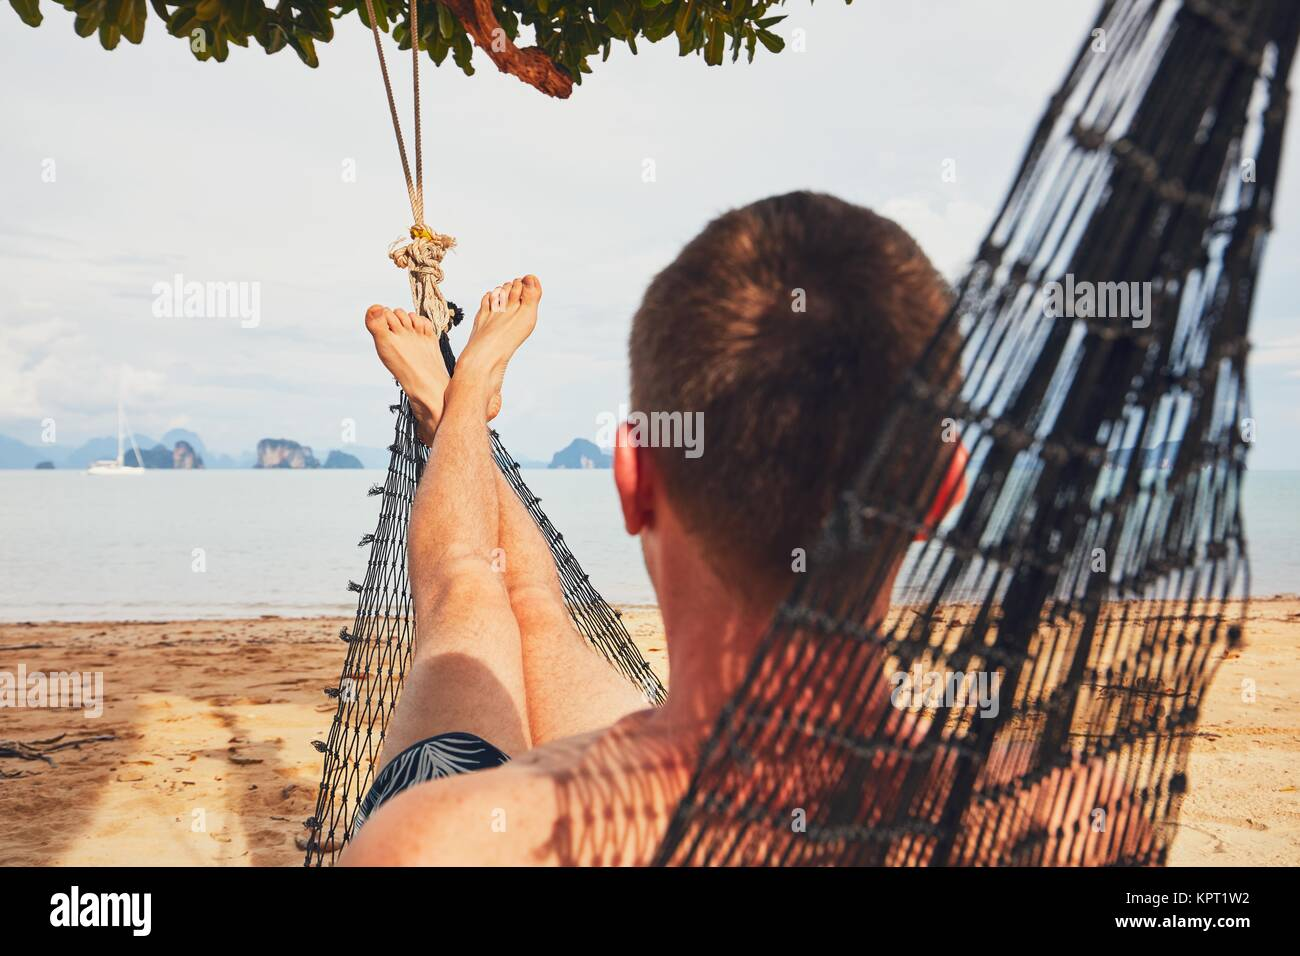 Young man (tourist) relaxing in the hammock on the sand beach - selective focus on foot. Koh Yao Noi island situated - Stock Image